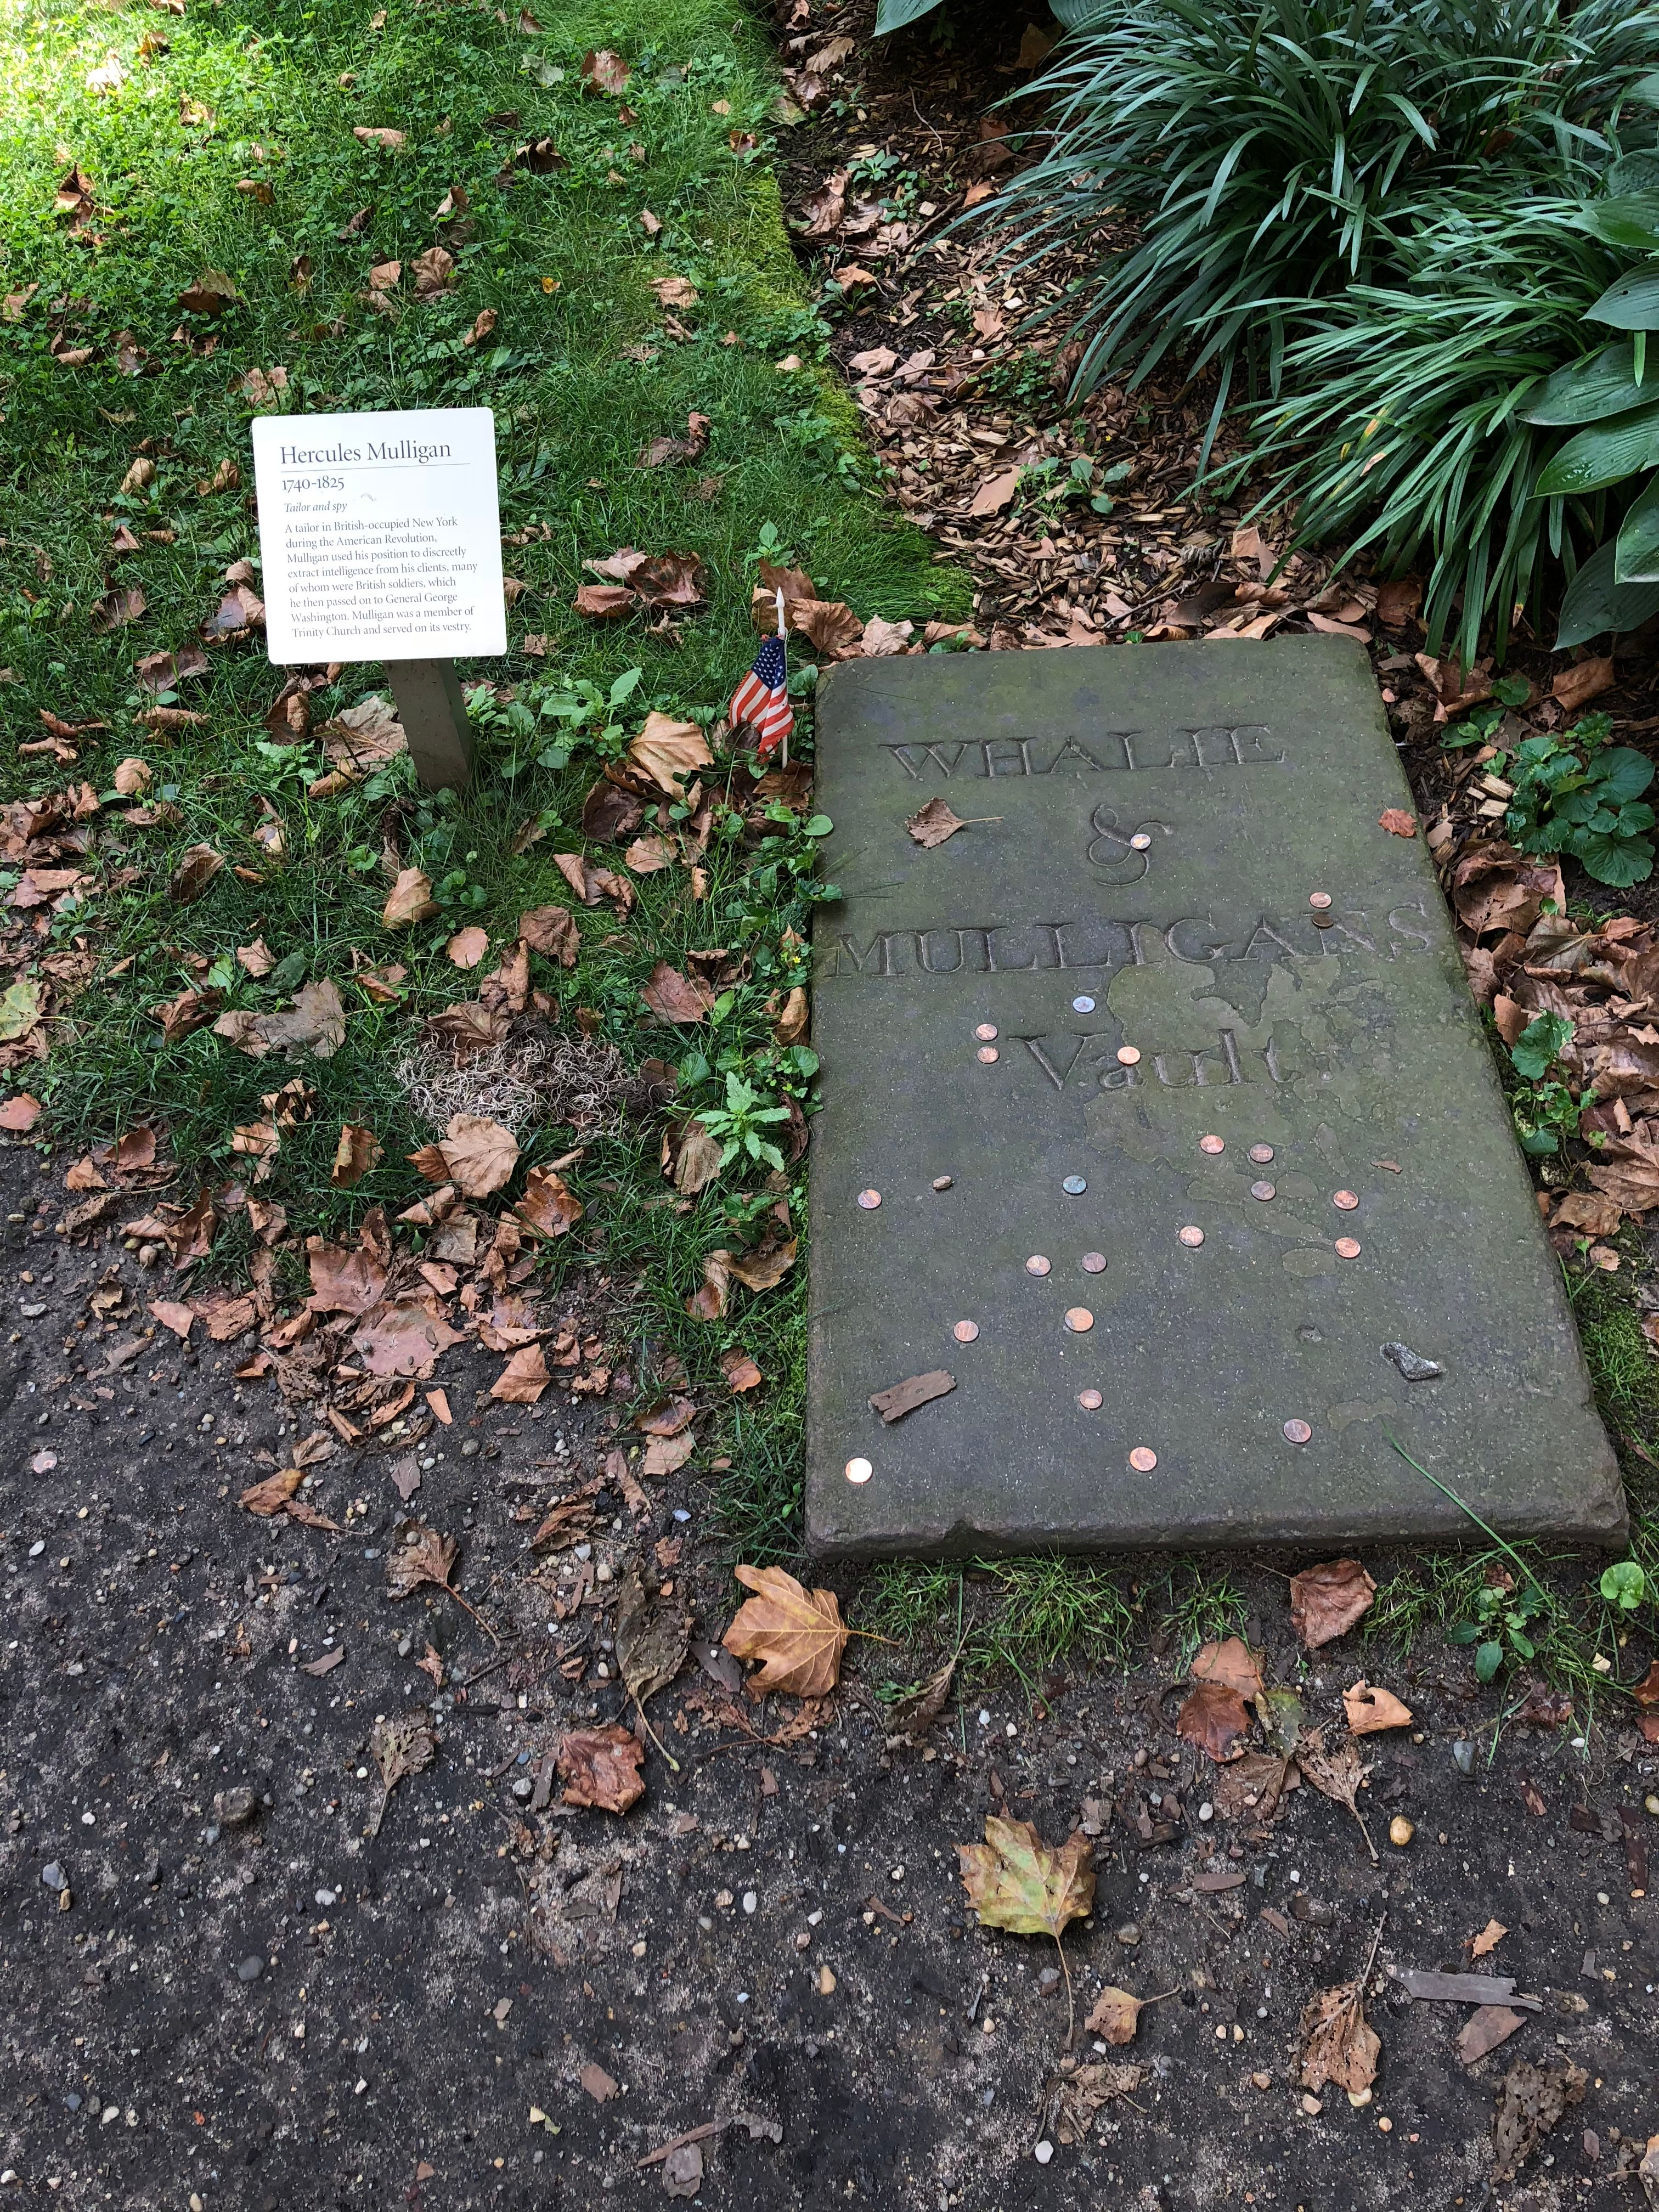 Mulligan died in 1825 at the age of 80 and is buried next to Alexander Hamilton in Trinity Church in New York City.